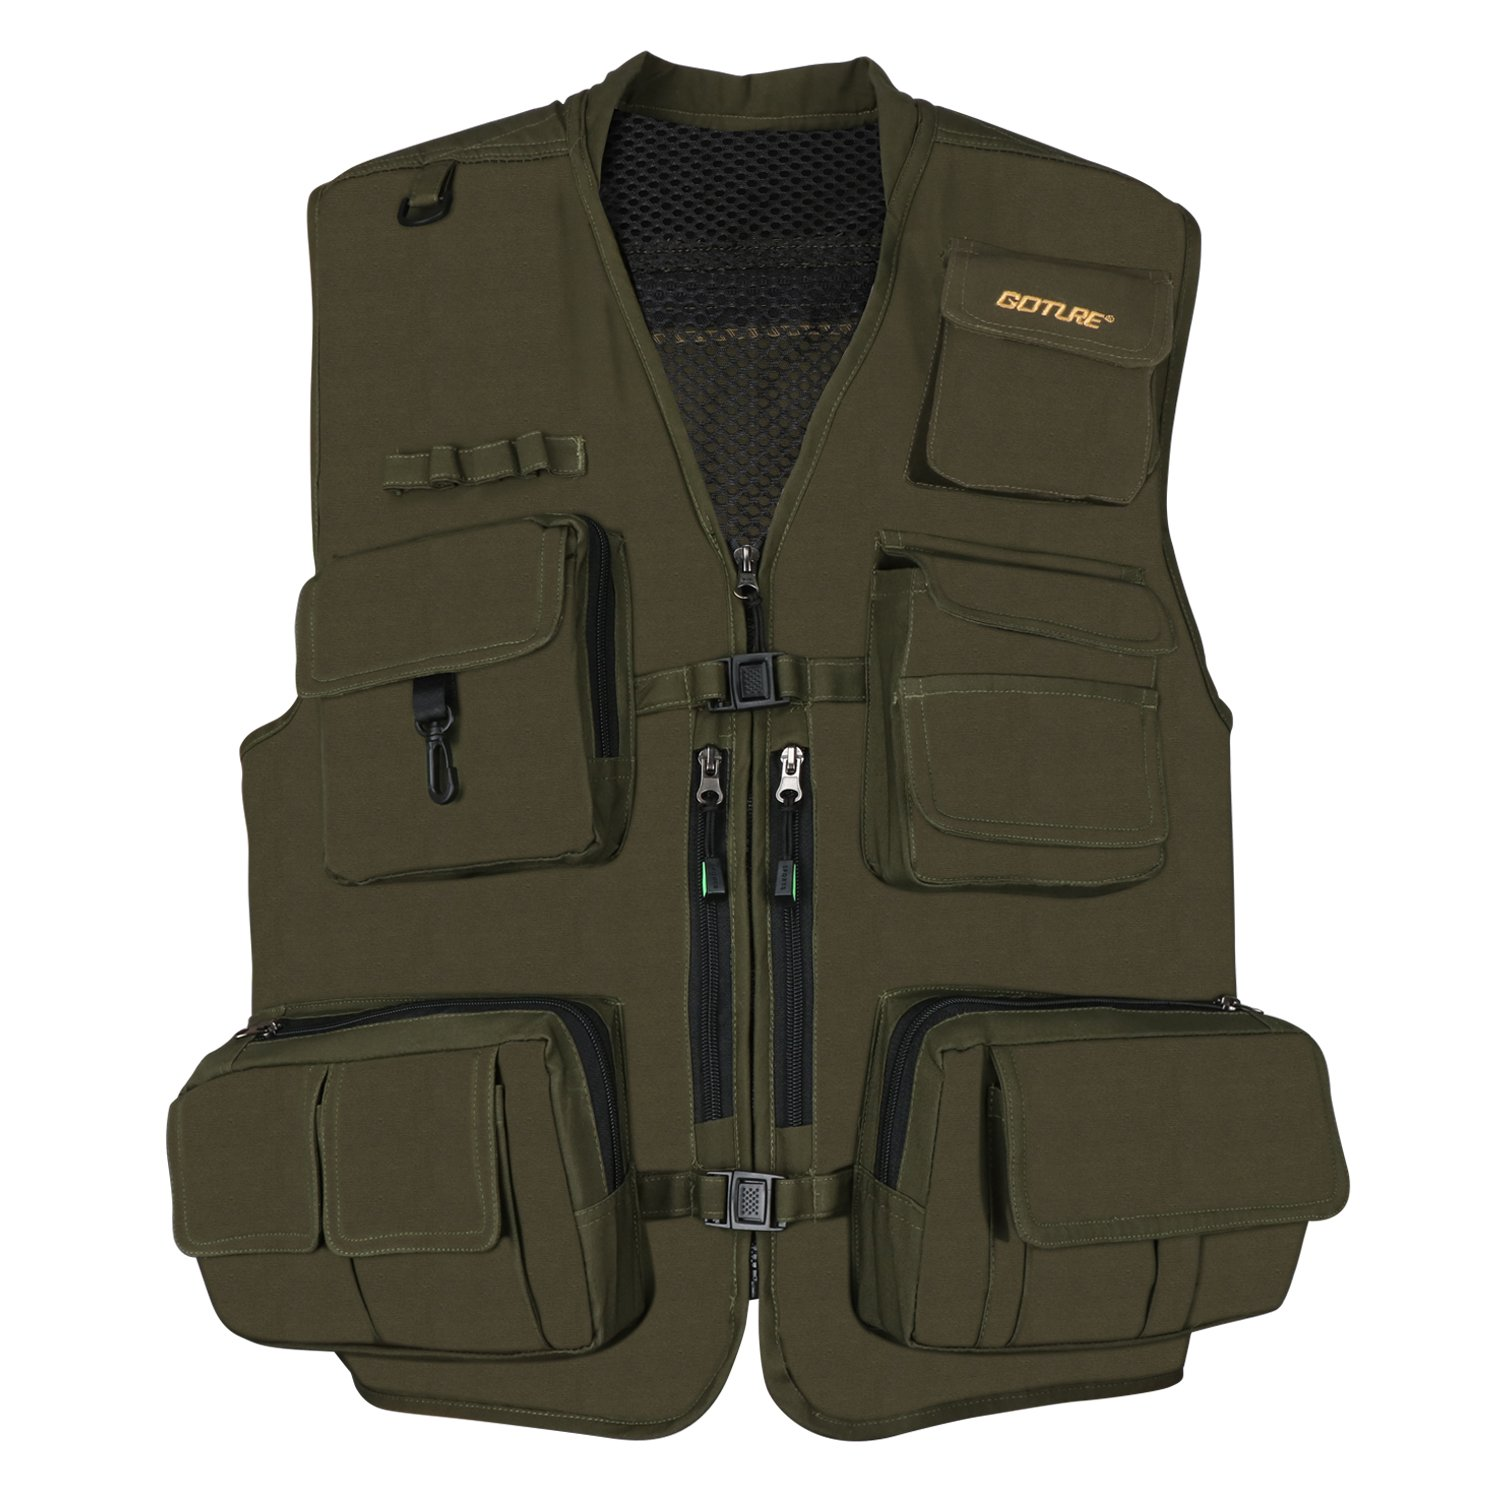 Goture Multi-Pockets Fishing Vest Travel Camping Photography Hiking Hunting Vest